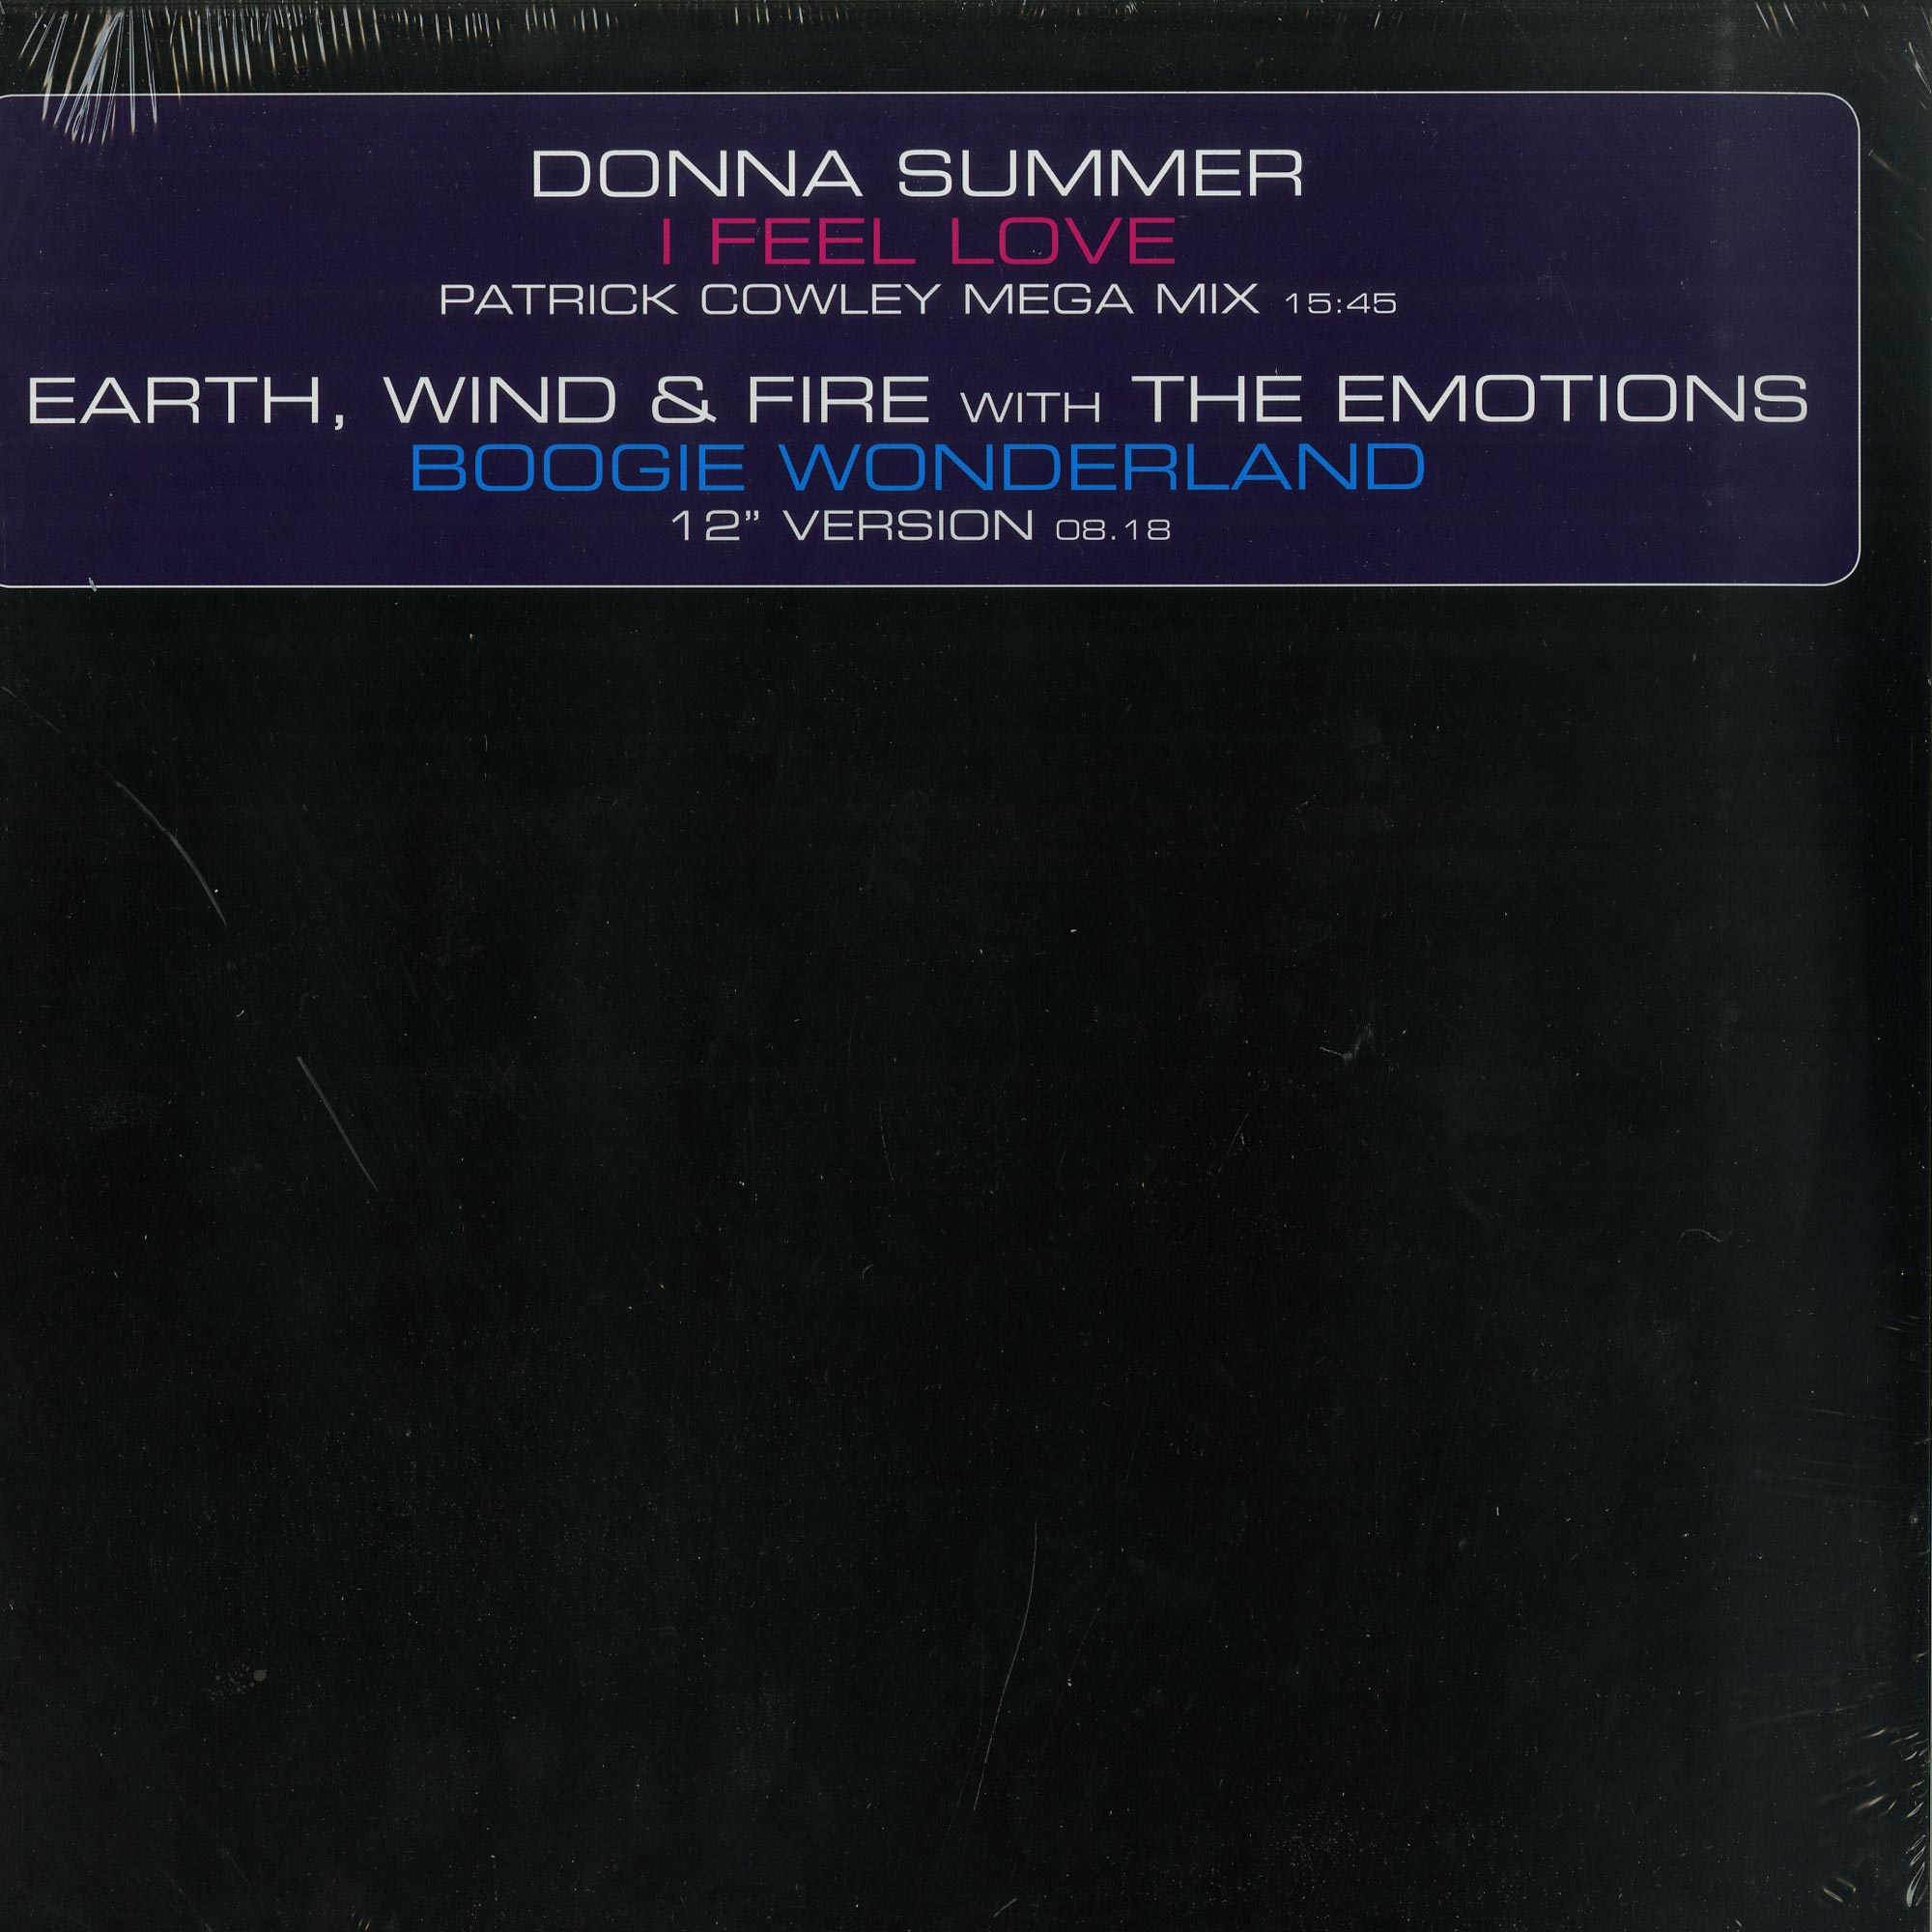 Donna Summer / Earth, Wind & Fire - I FEEL LOVE / BOOGIE WONDERLAND